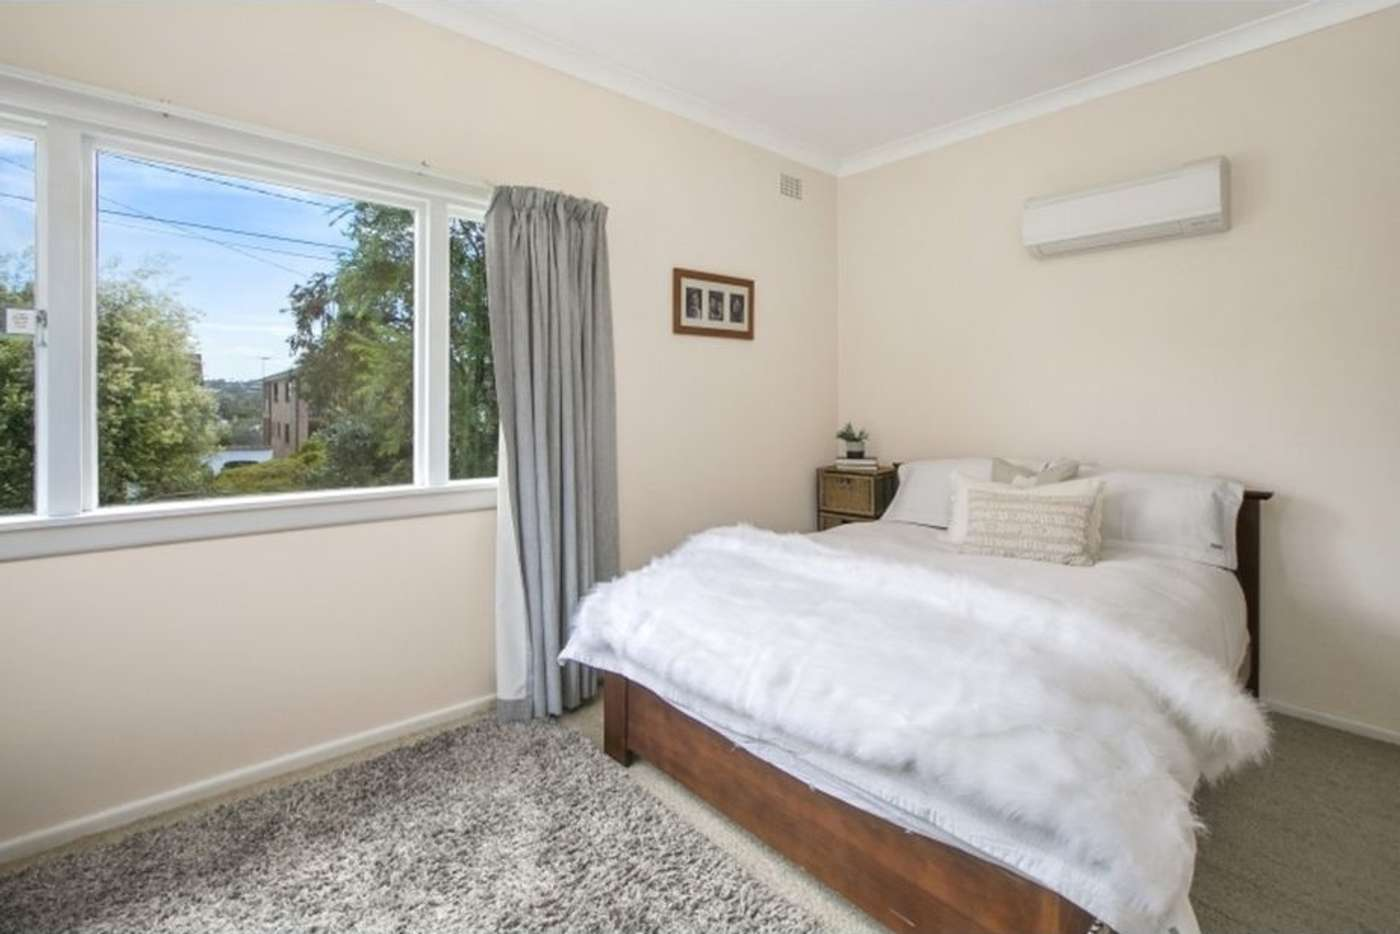 Sixth view of Homely house listing, 30 Westmoreland Avenue, Collaroy NSW 2097